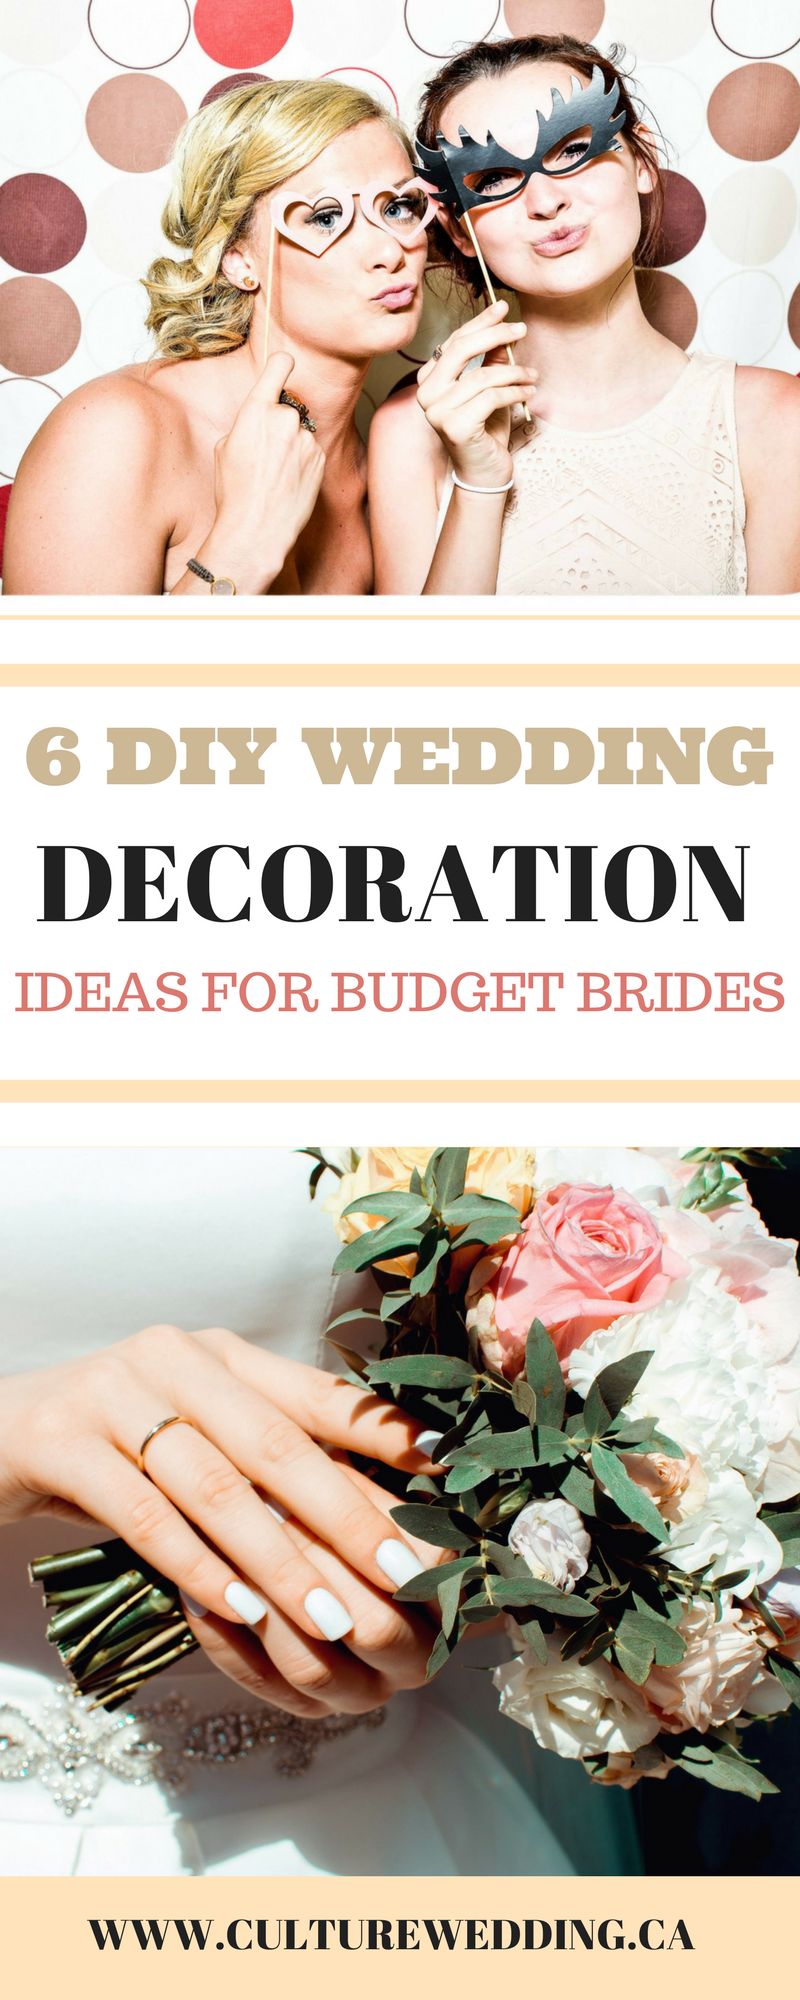 6 UNIQUE BEAUTIFUL DIY WEDDING RECEPTION IDEAS ON A BUDGET. DIY Wedding decorations for brides on a budget. wedding ideas on a budget. DIY Wedding reception decorations on a budget. DIY Country Wedding Décor. Ways To Save Money On Your Wedding. Homemade wedding decorations. #weddingdecorations #diywedding